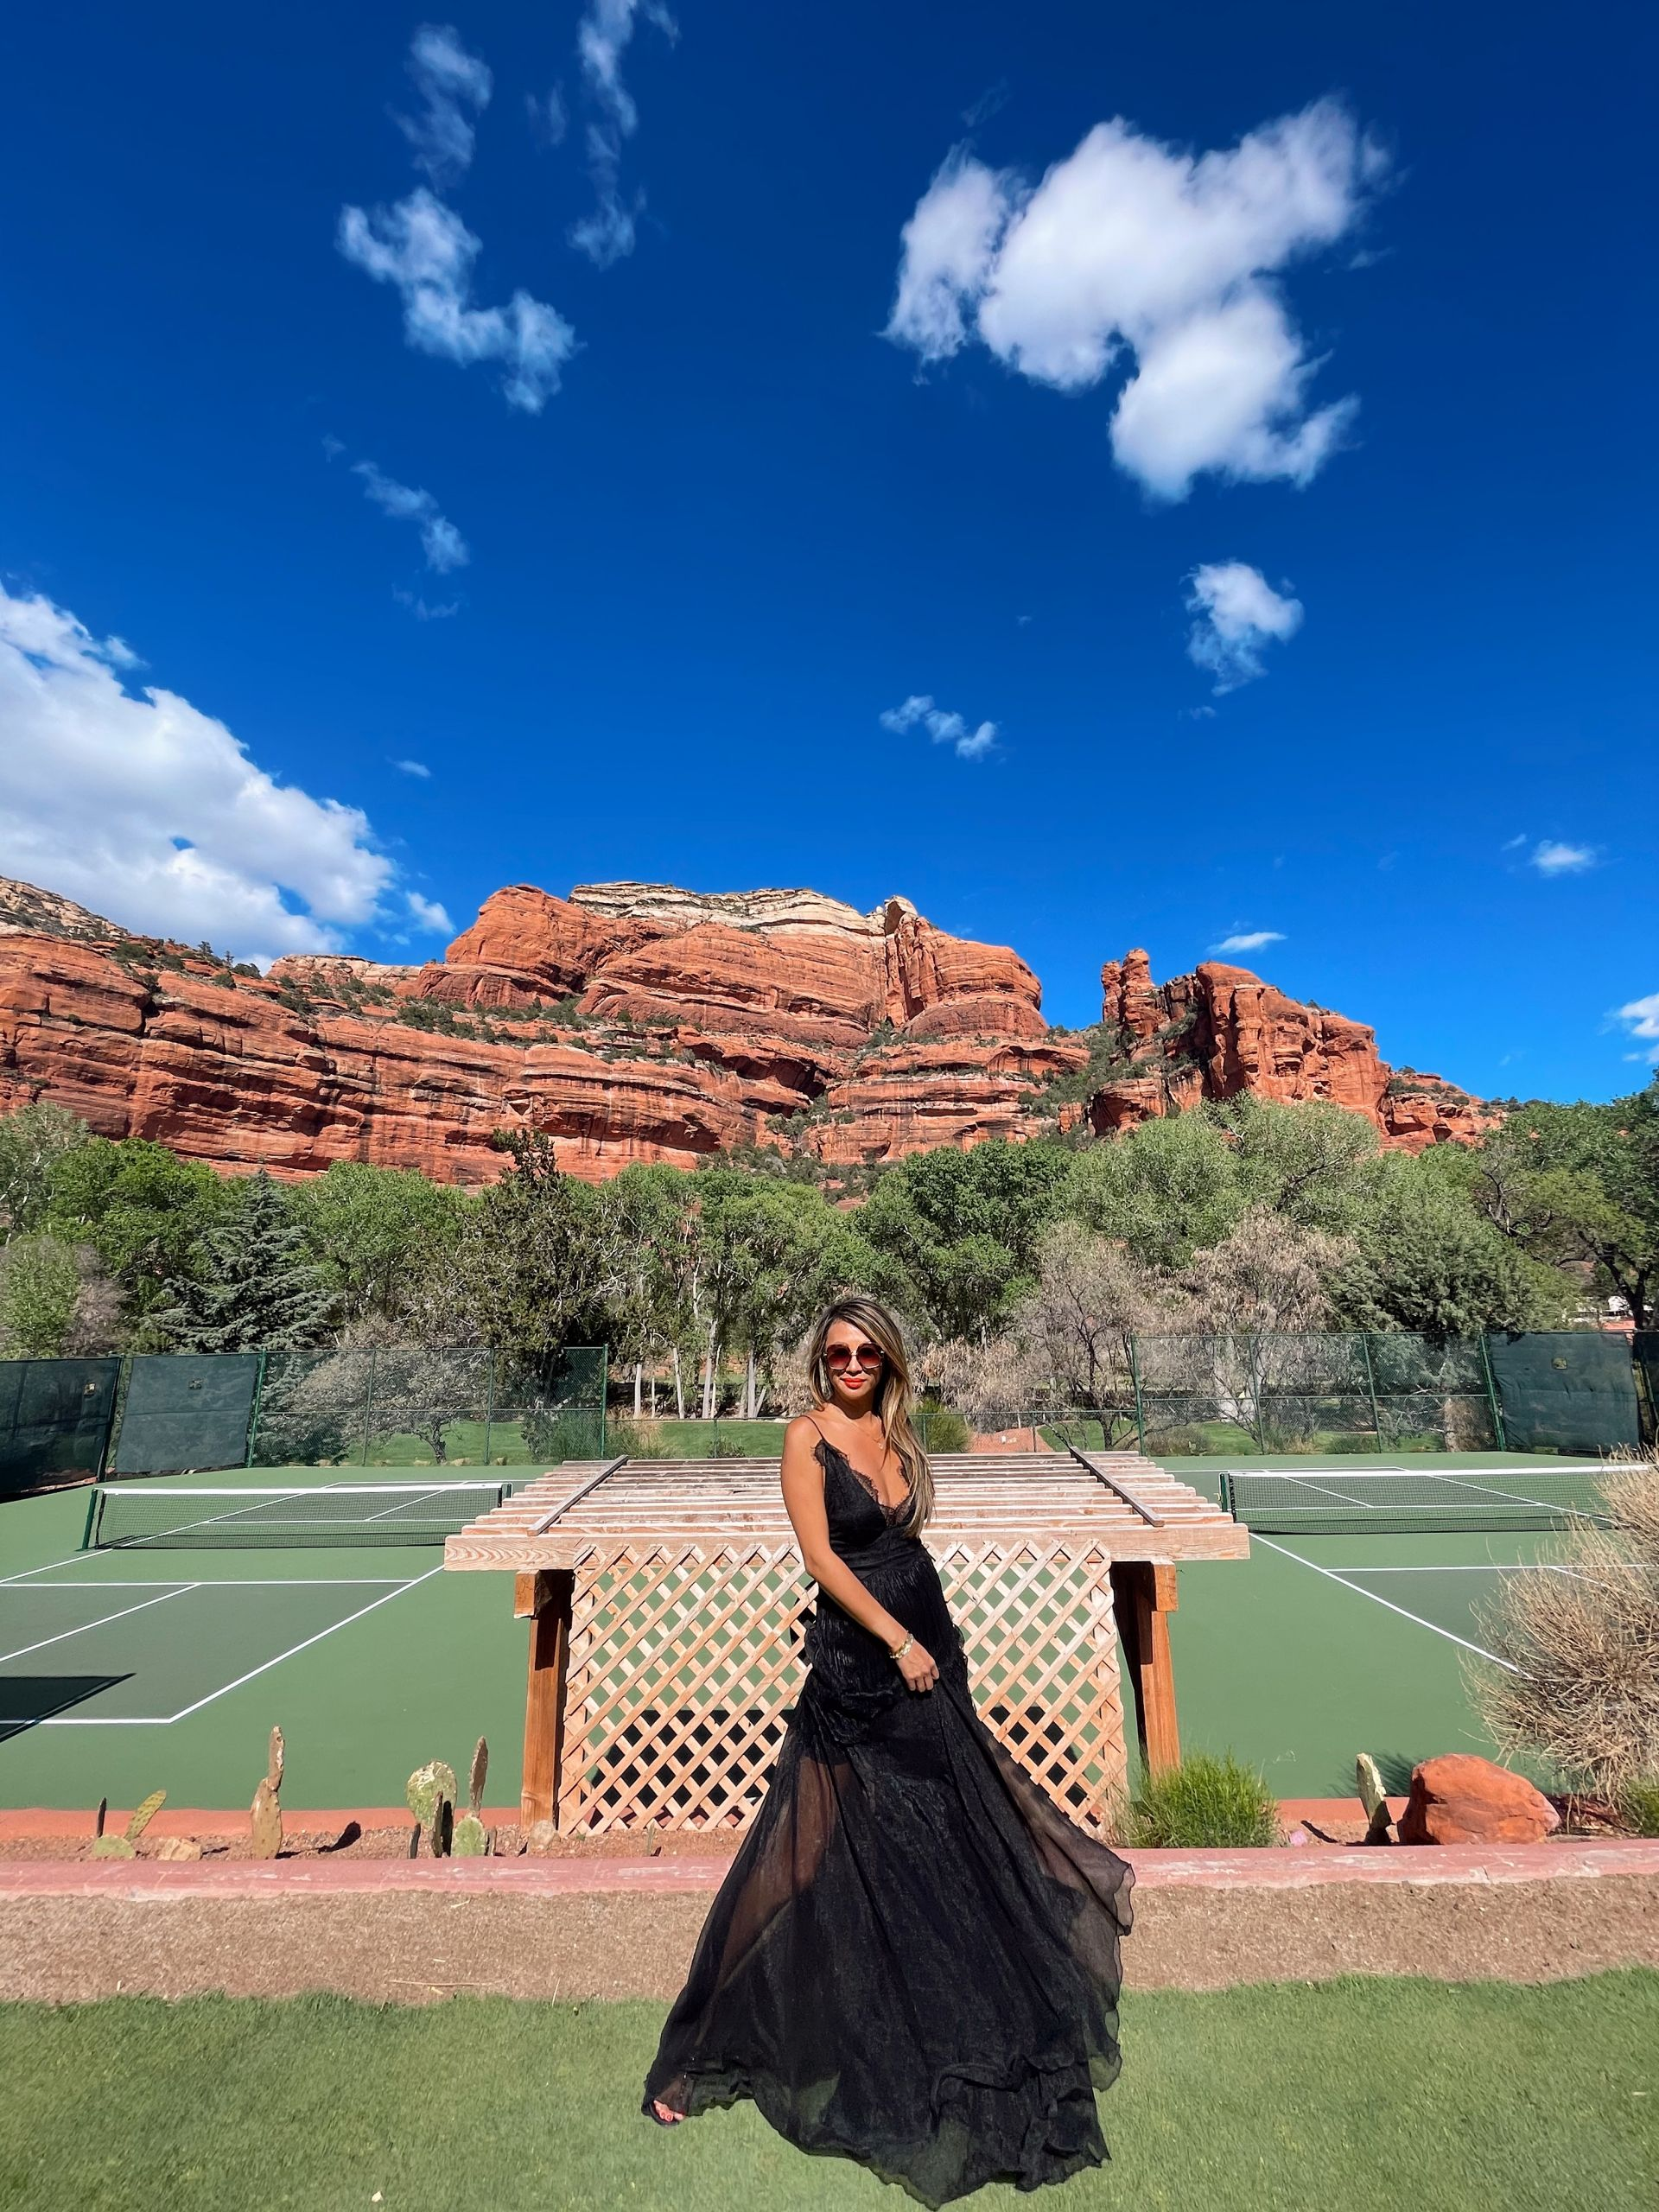 Enchantment Resort, Sedona's Boynton Canyon, Sedona Resort, Sedona Travel Itinerary, SedonaTravel Guide, Tips for Your FirstSedonaTrip,A Weekend Guide toSedona, Guide to Sedona, 2 days in Sedona, Sedona desertphotography, desert photographyideas, Jen Worman, Red Soles and Red Wine, travel blogger, travel influencer